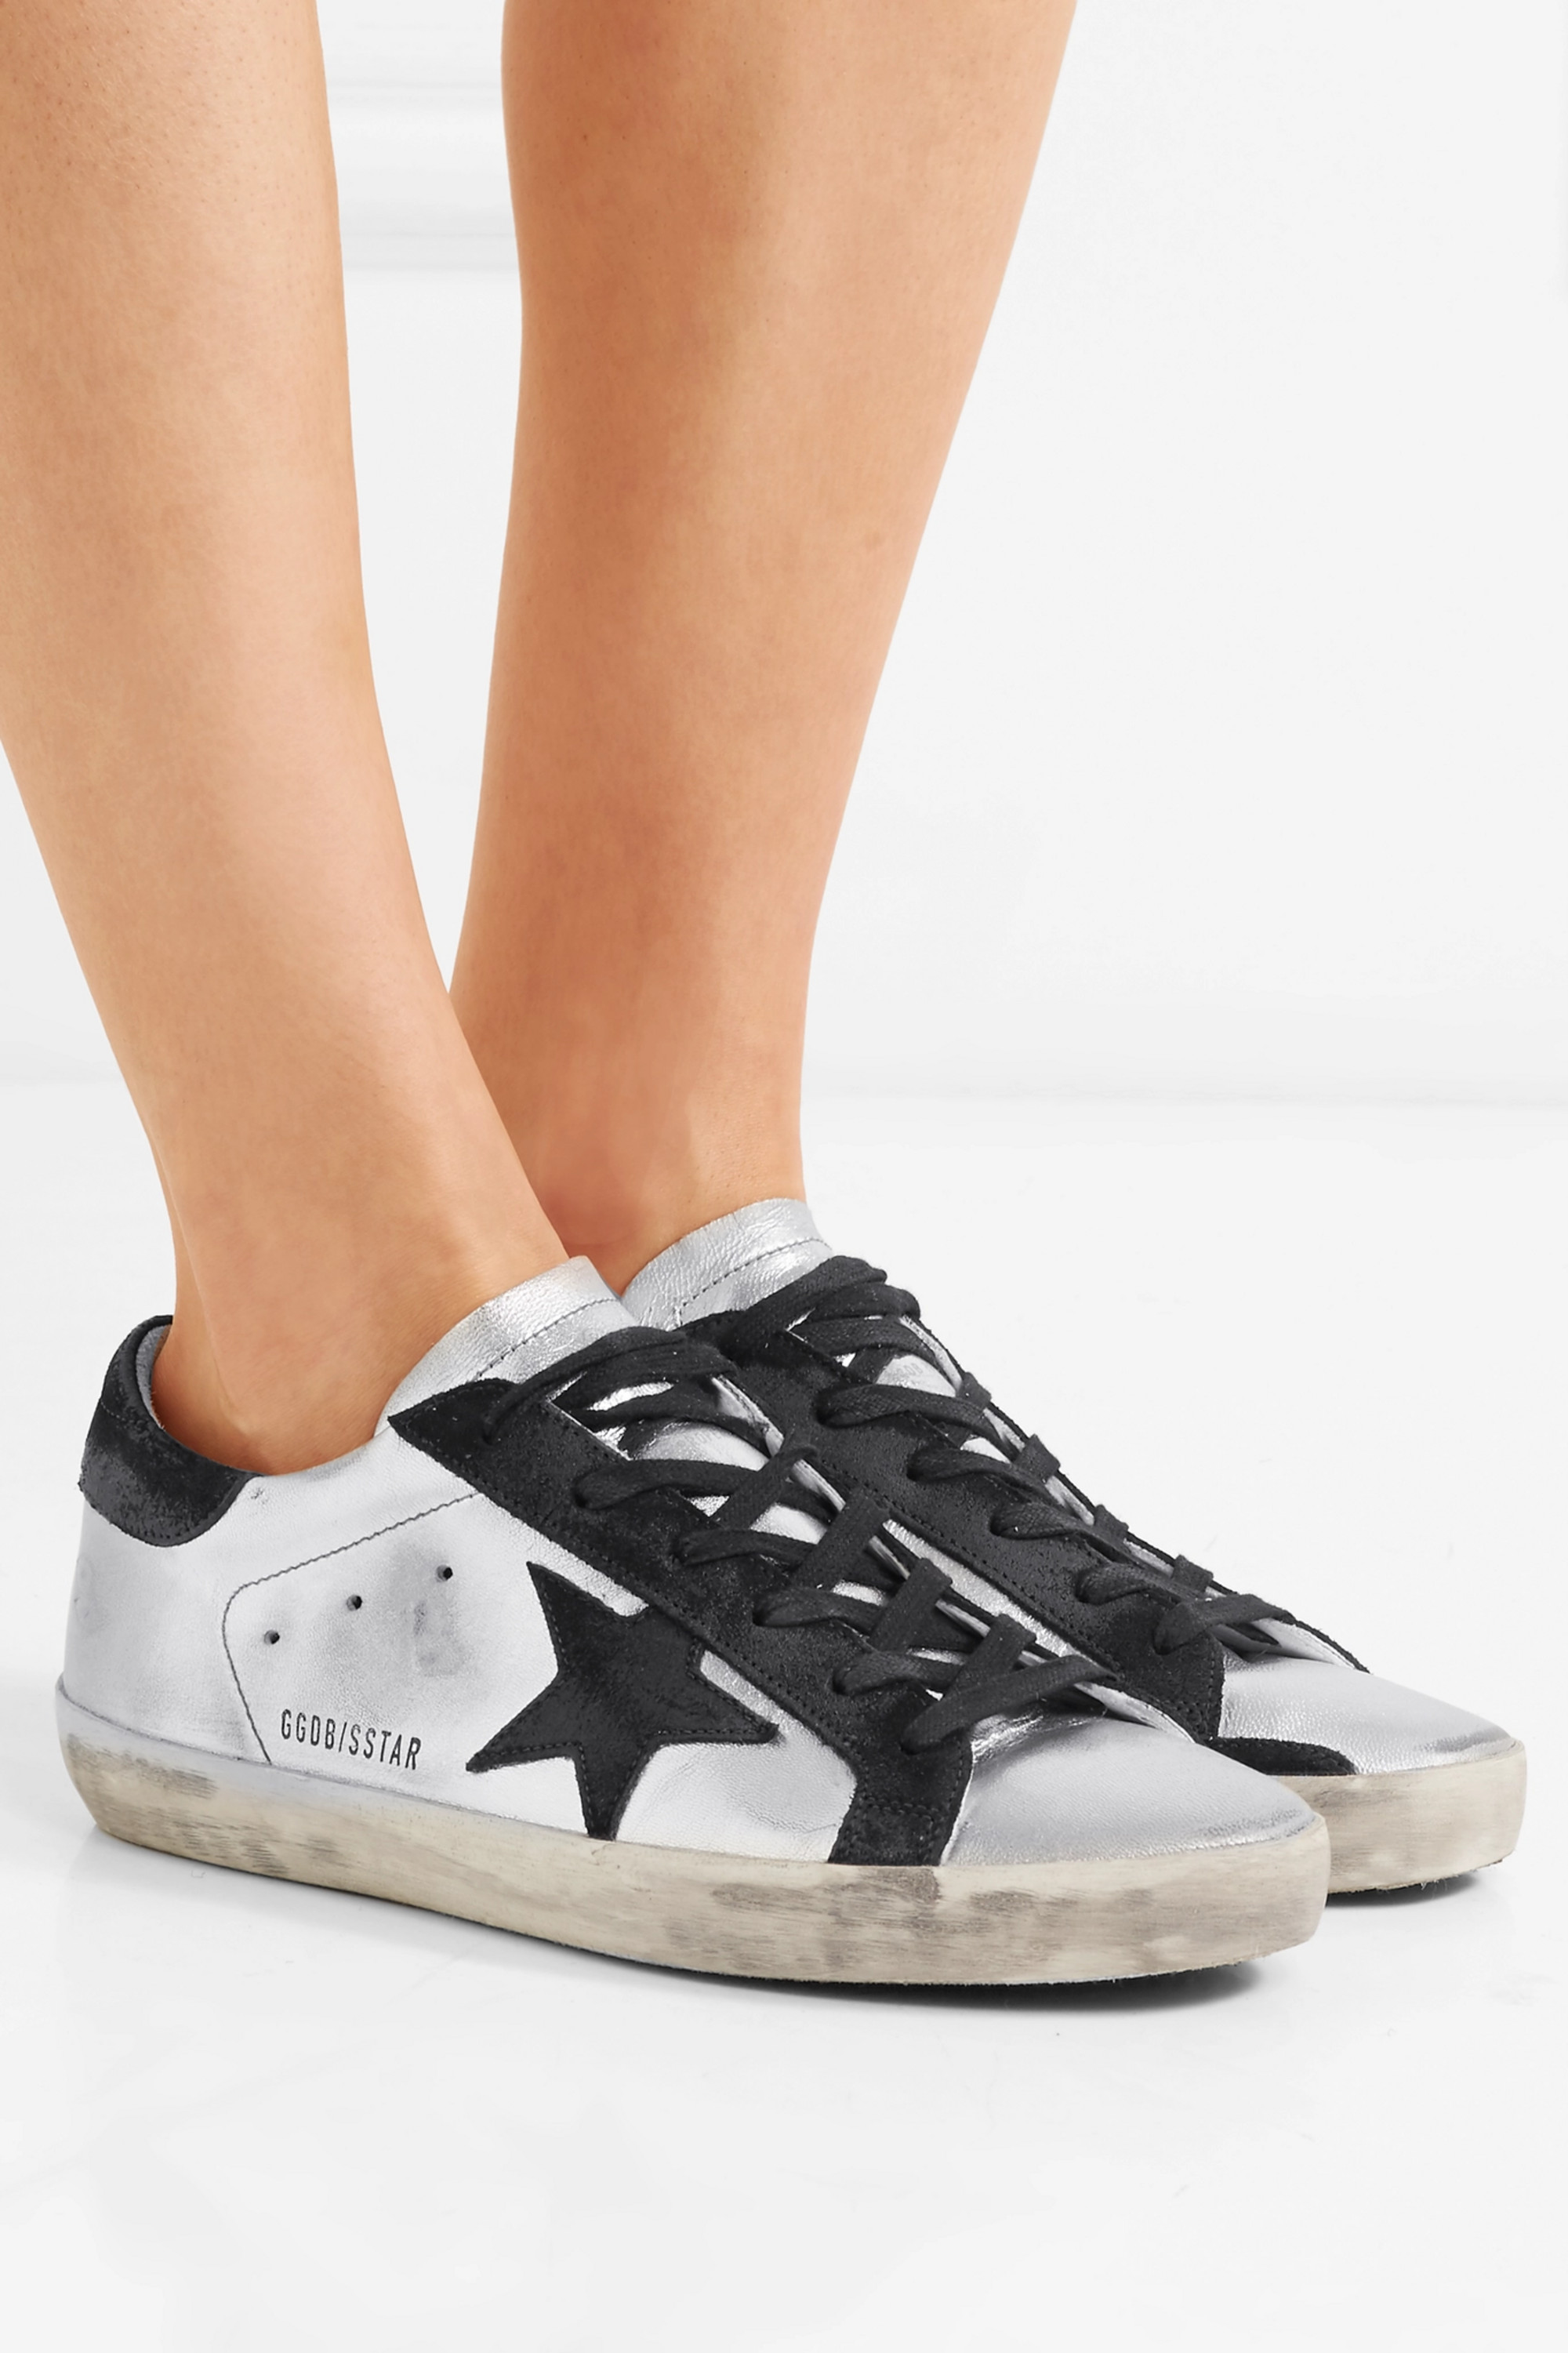 White Superstar distressed leather and